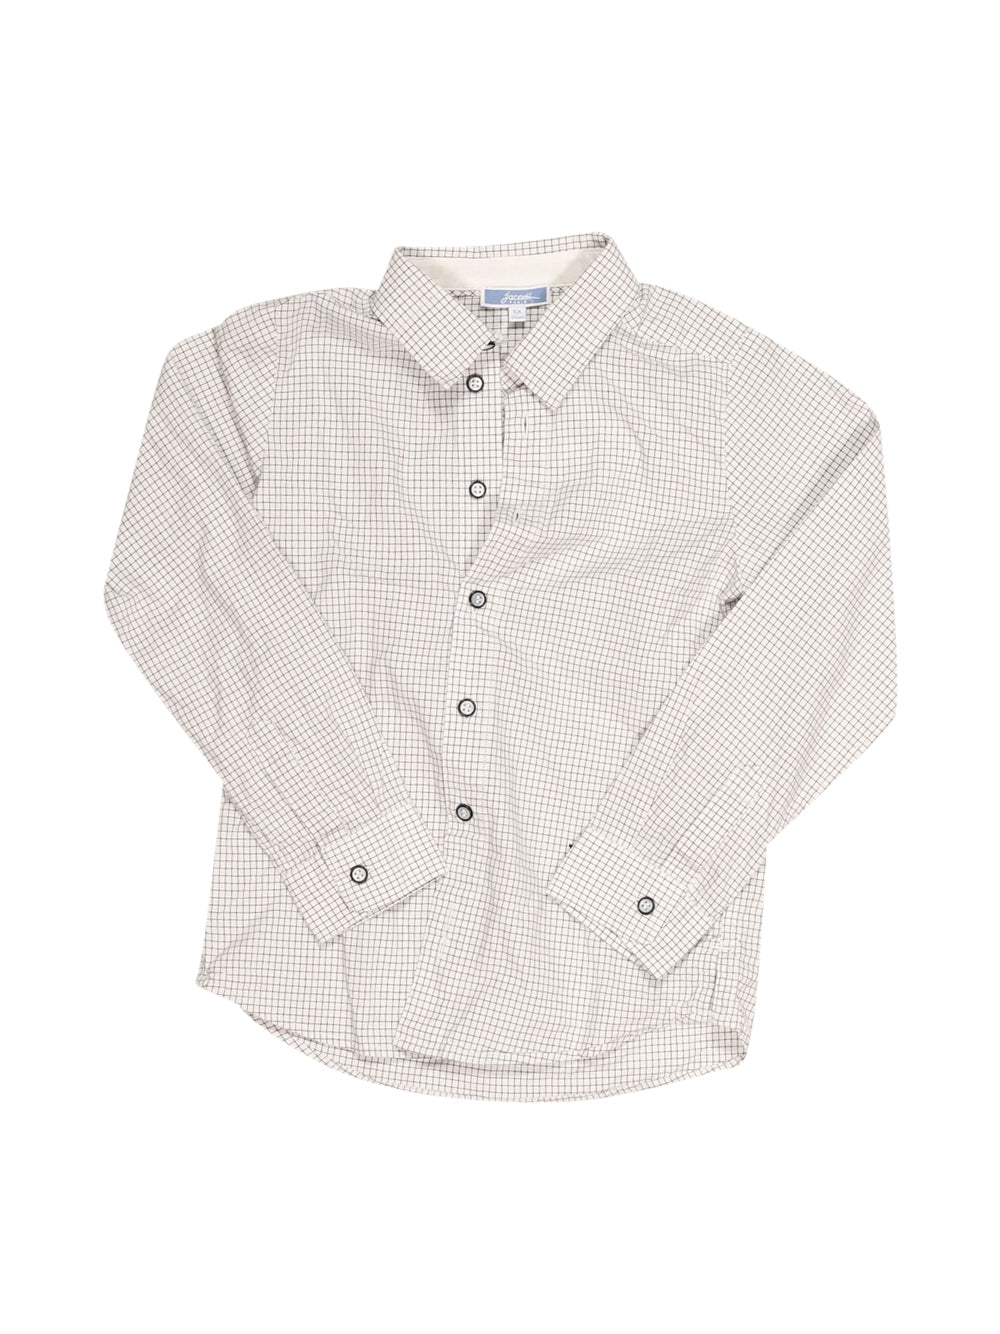 Front photo of Preloved Jacadi White Boy's shirt - size 5-6 yrs